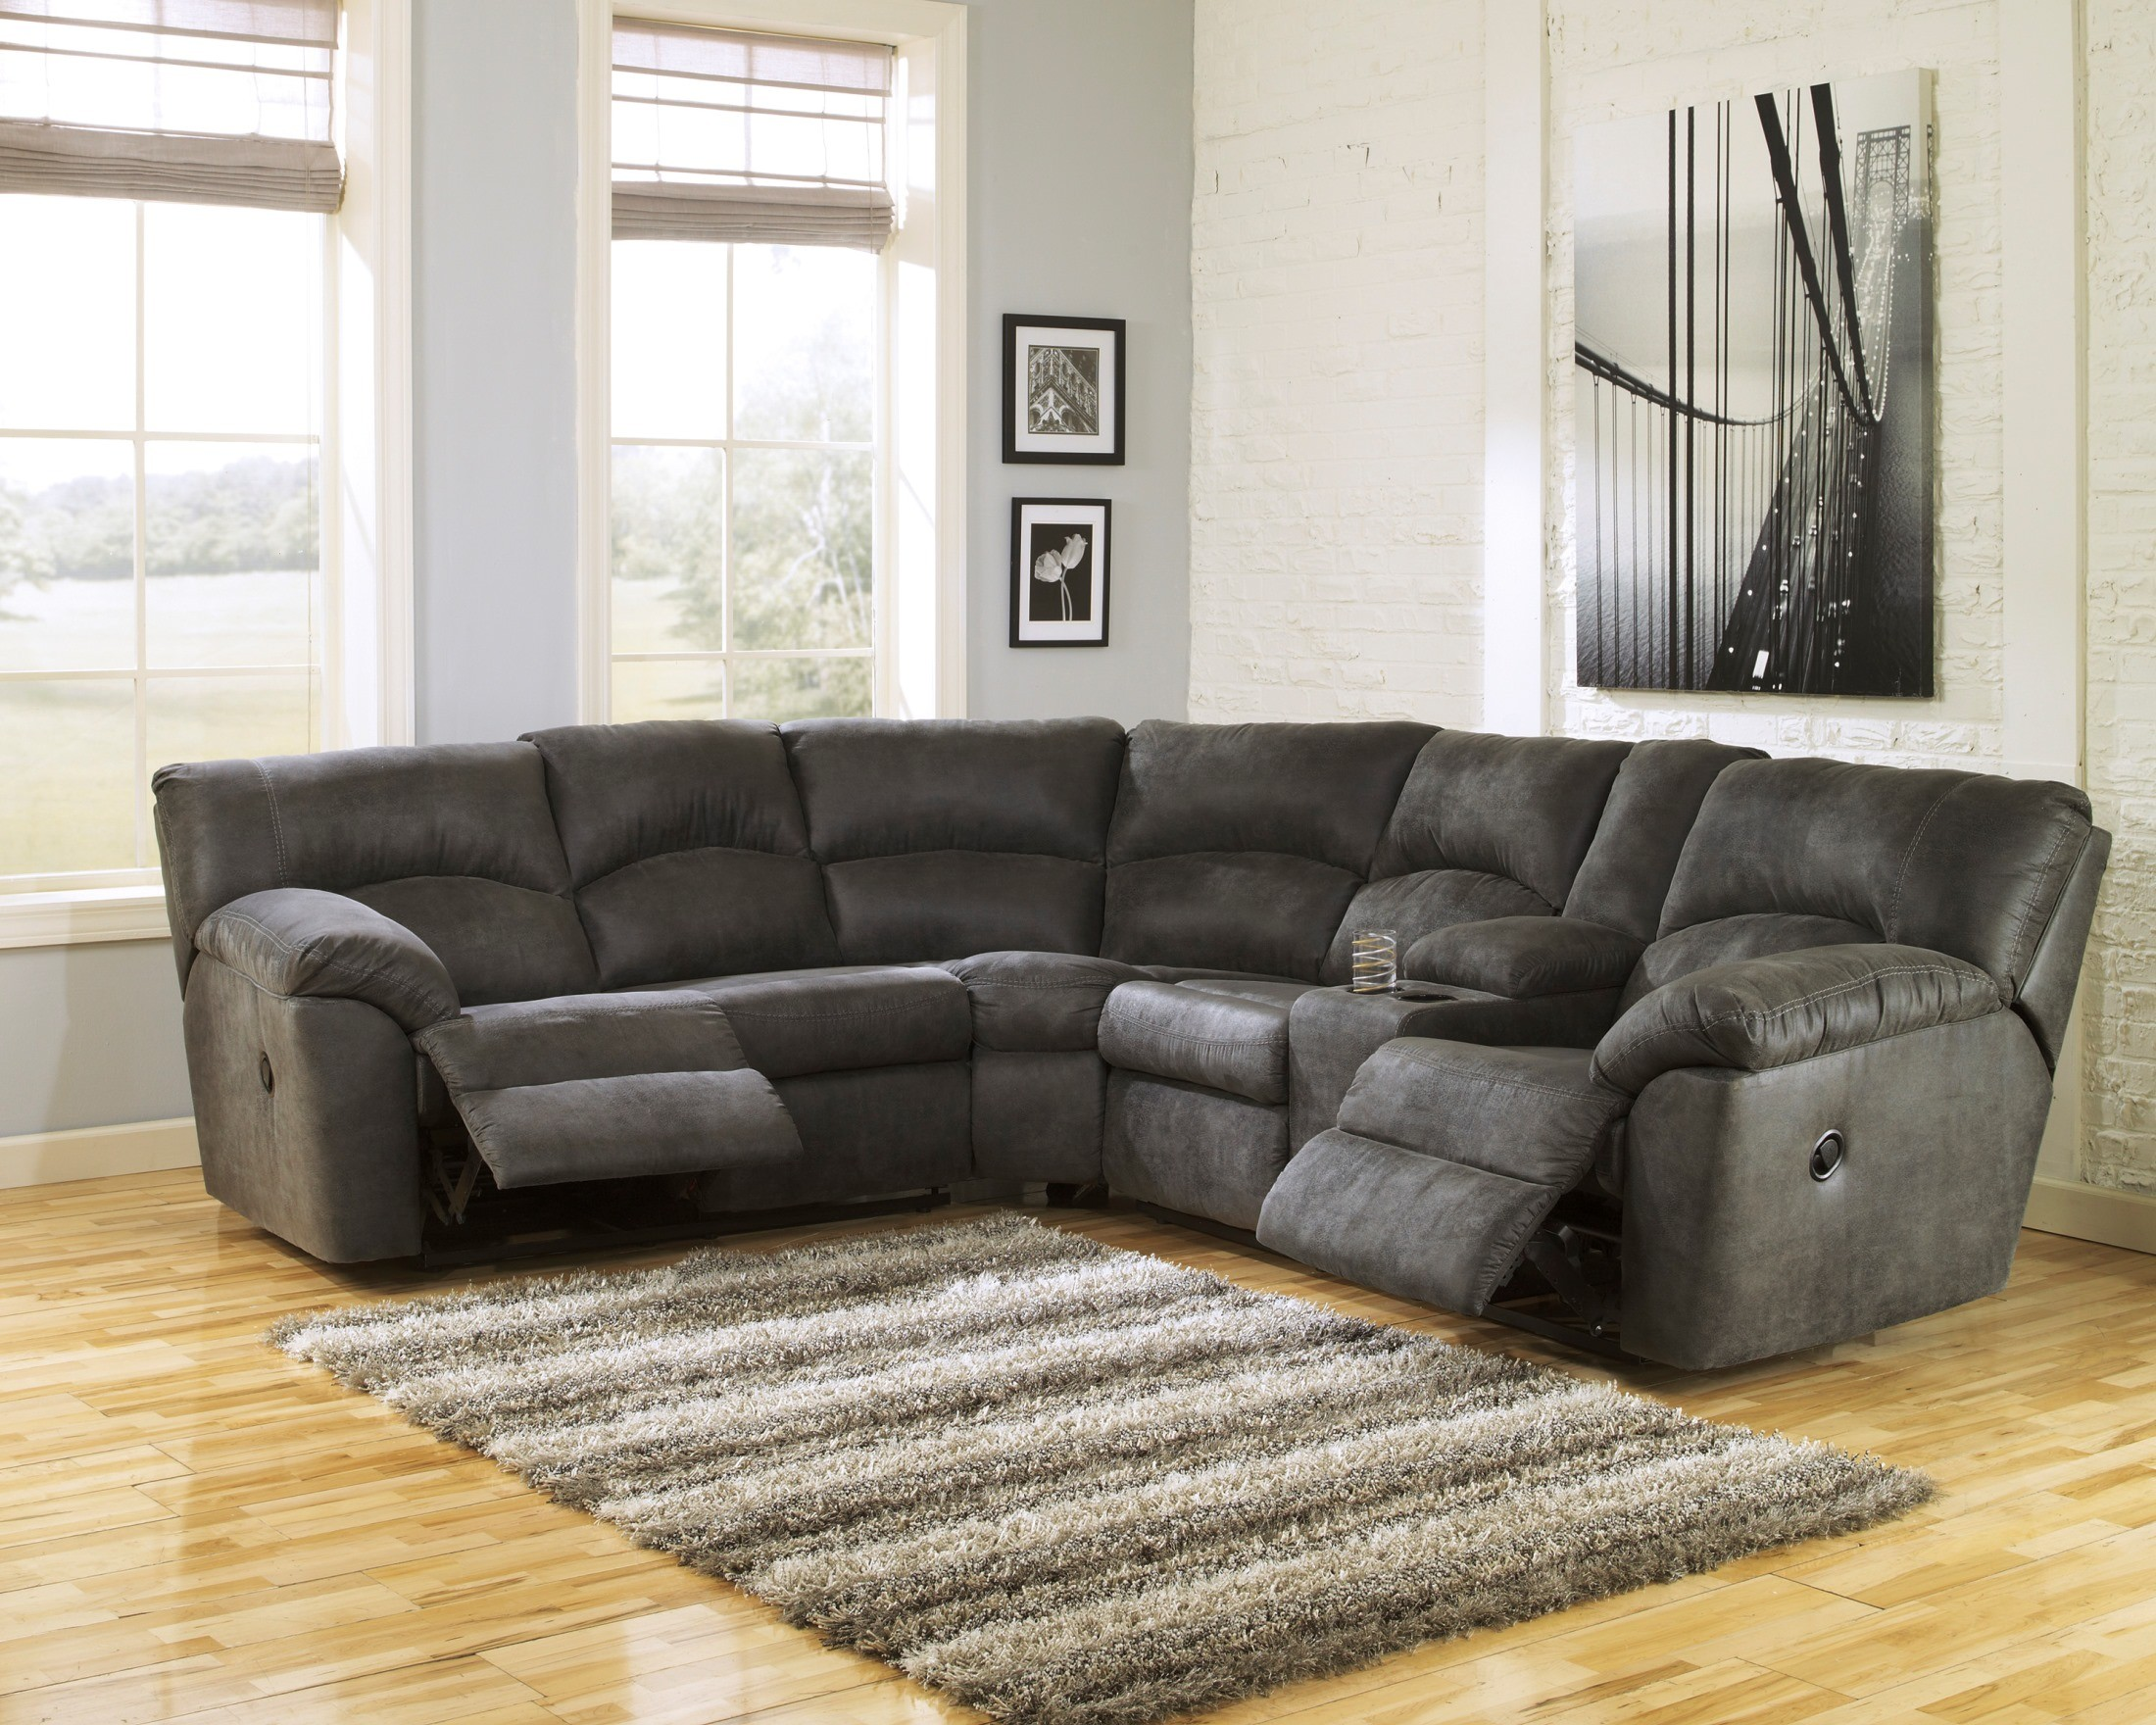 freight american furniture select factory sectional sets sofa rooms room living discount